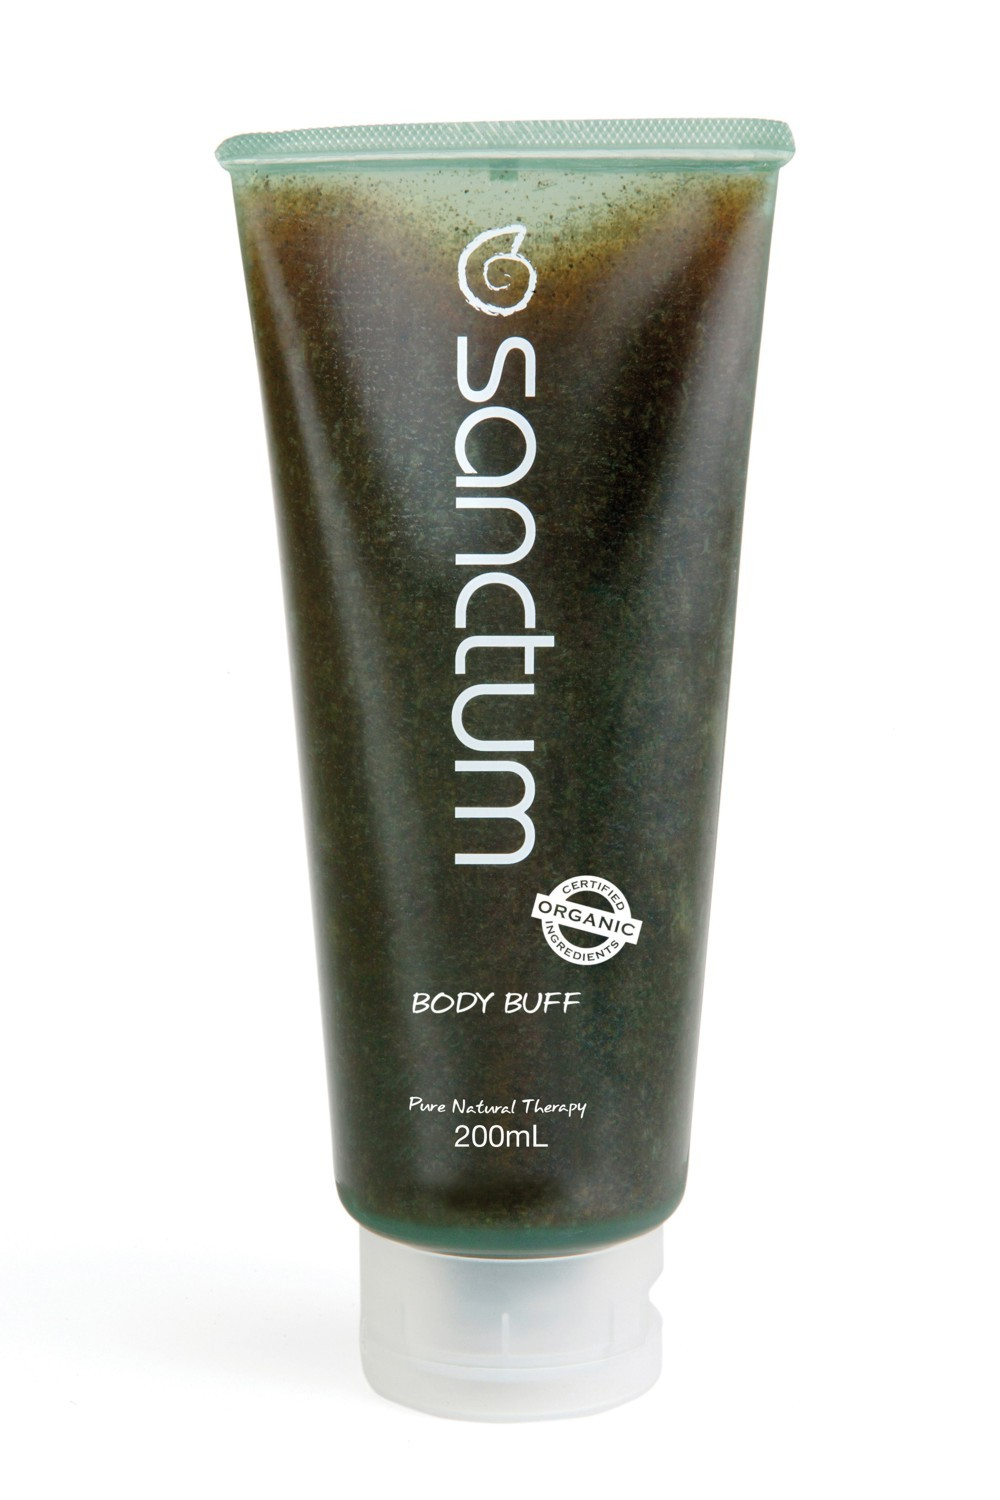 Sanctum Body Buff (200ml)